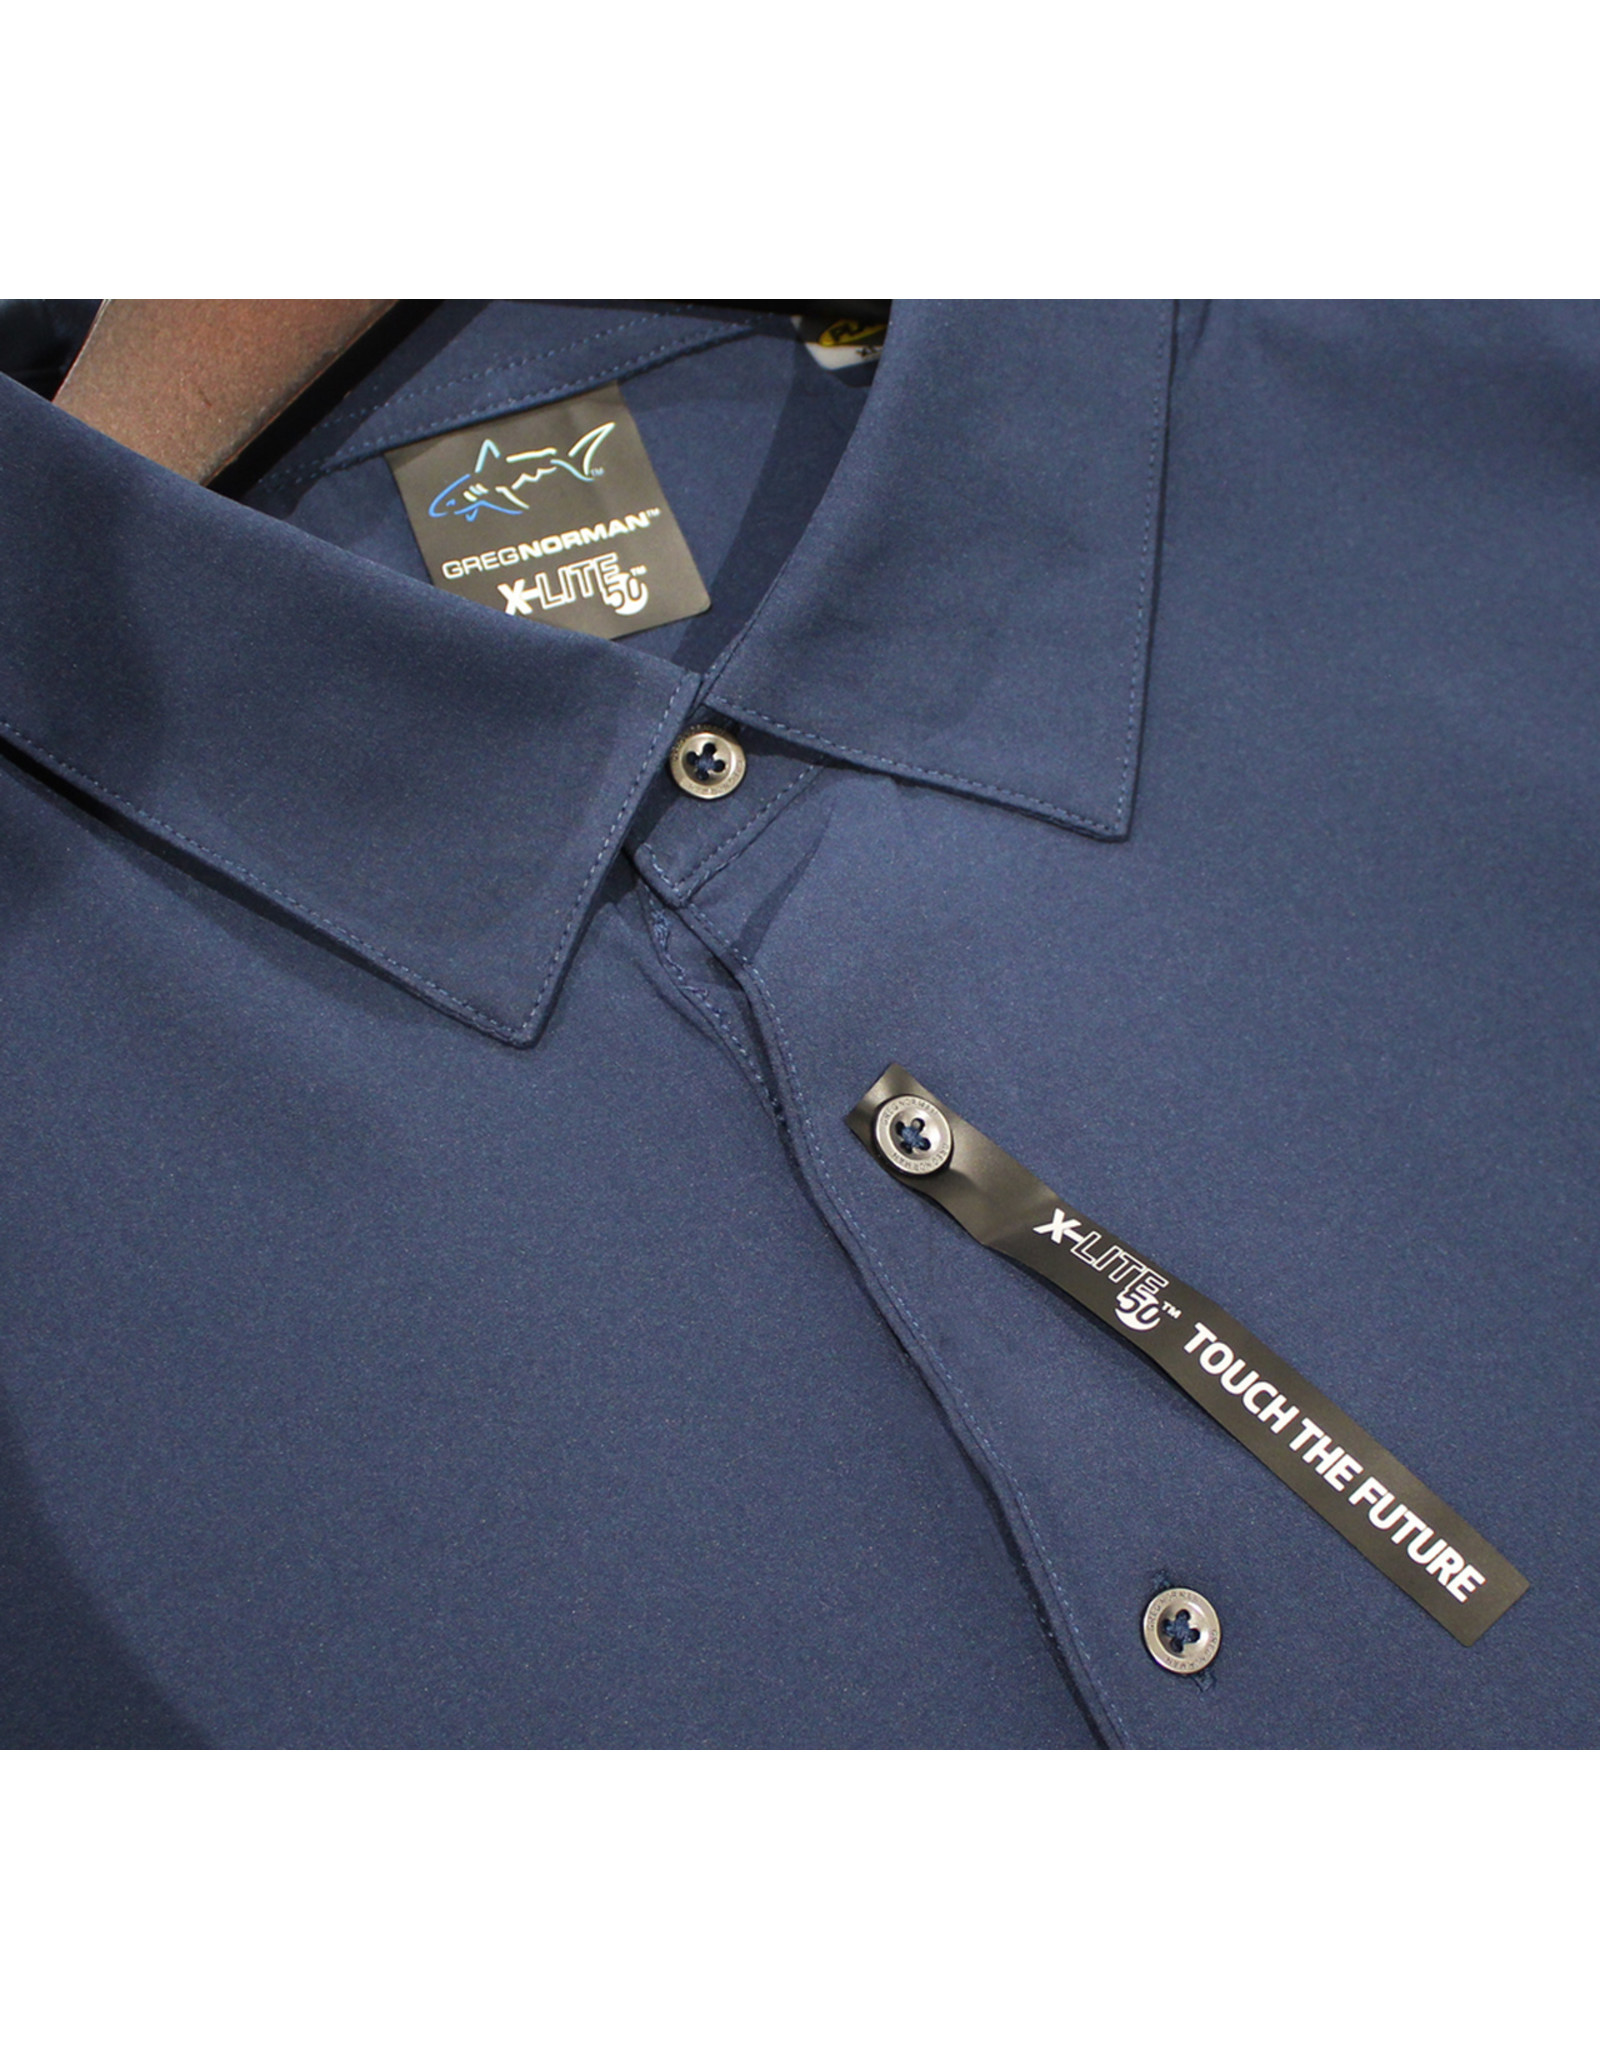 Greg Norman X-LITE Solid Polo